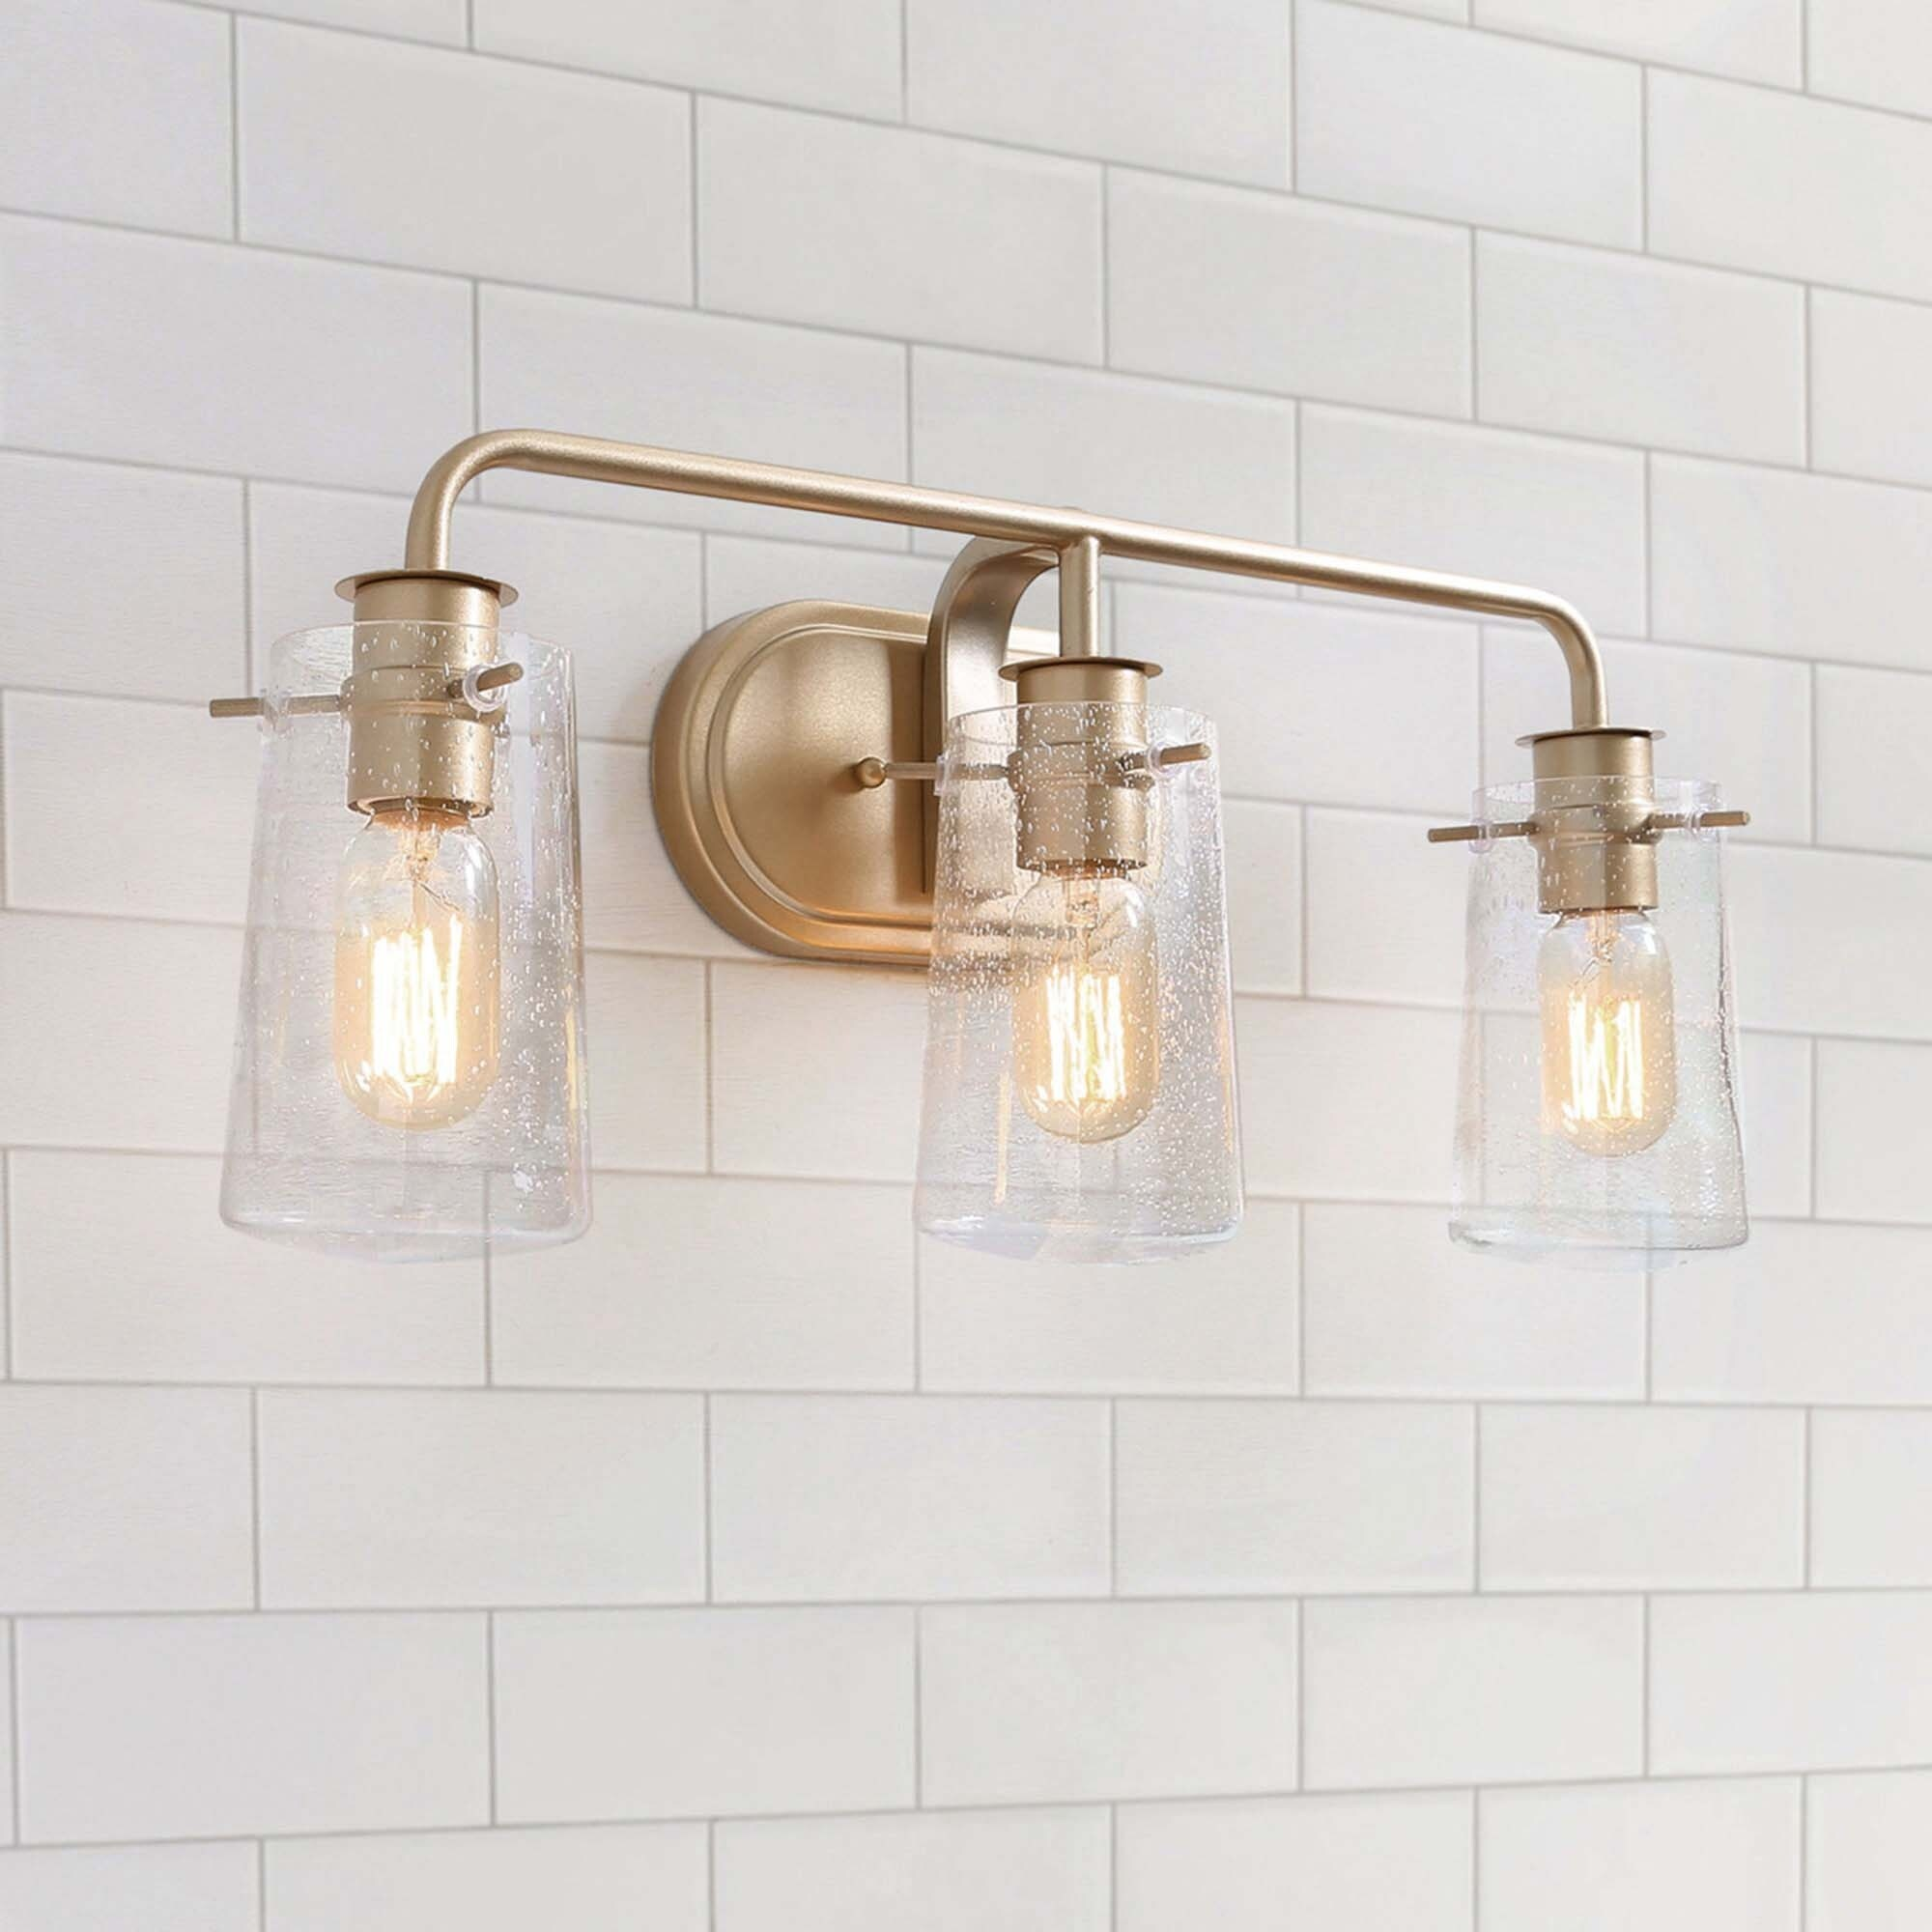 Modern 3 Lights Bathroom Vanity Lighting Golden Wall Sconce For Powder Room L22 5 Xw5 5 X H 9 L22 5 Xw5 5 X H 9 On Sale Overstock 29955459